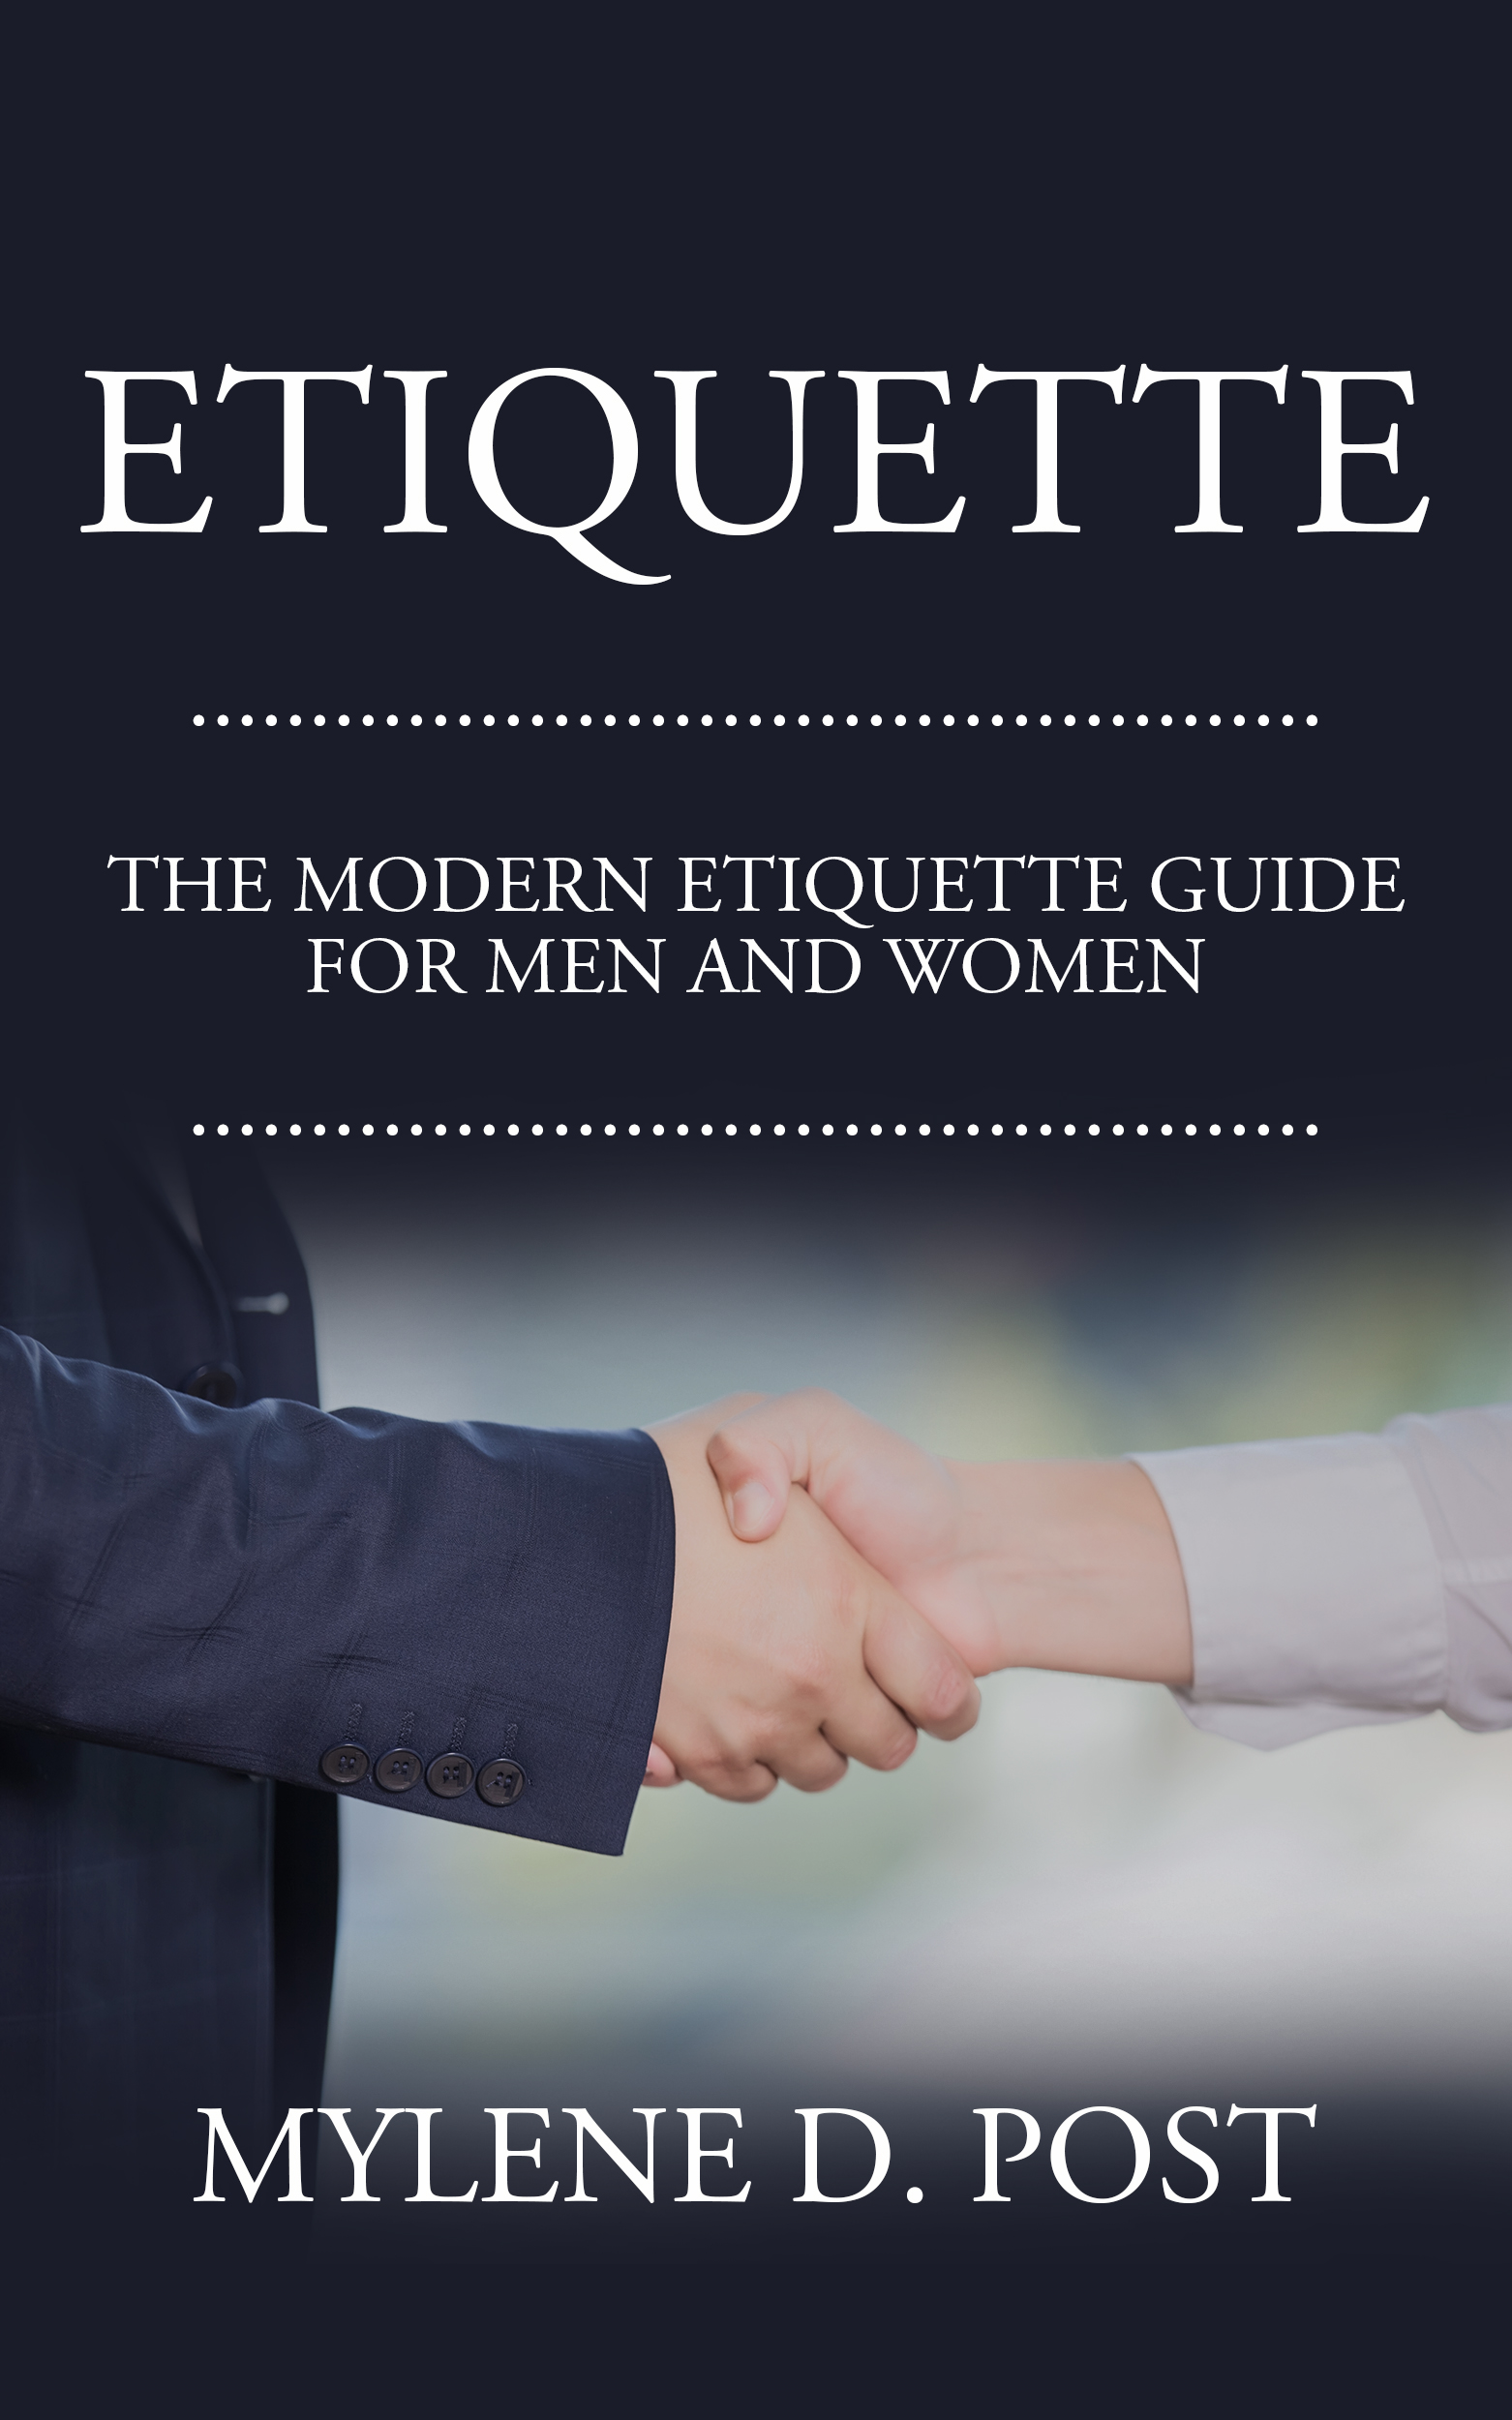 Etiquette: the modern etiquette guide for men and women